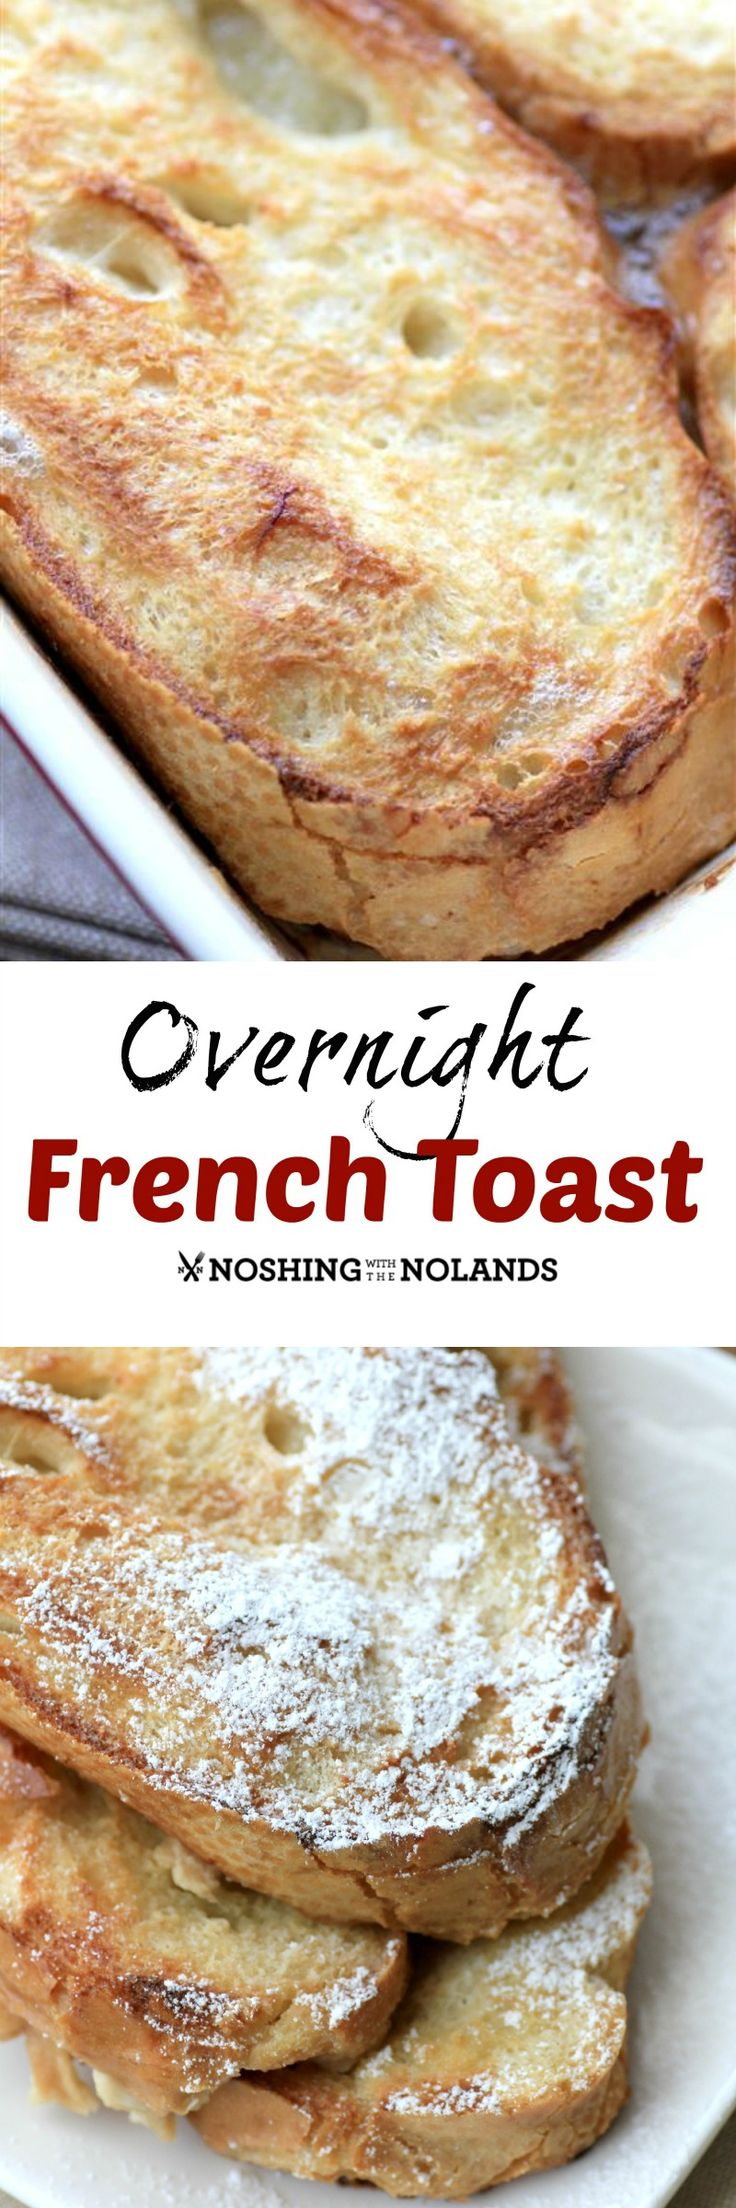 Best 20+ French Toast For One Ideas On Pinterest  Ingredients For French  Toast, Make French Toast And Recipe For French Toast